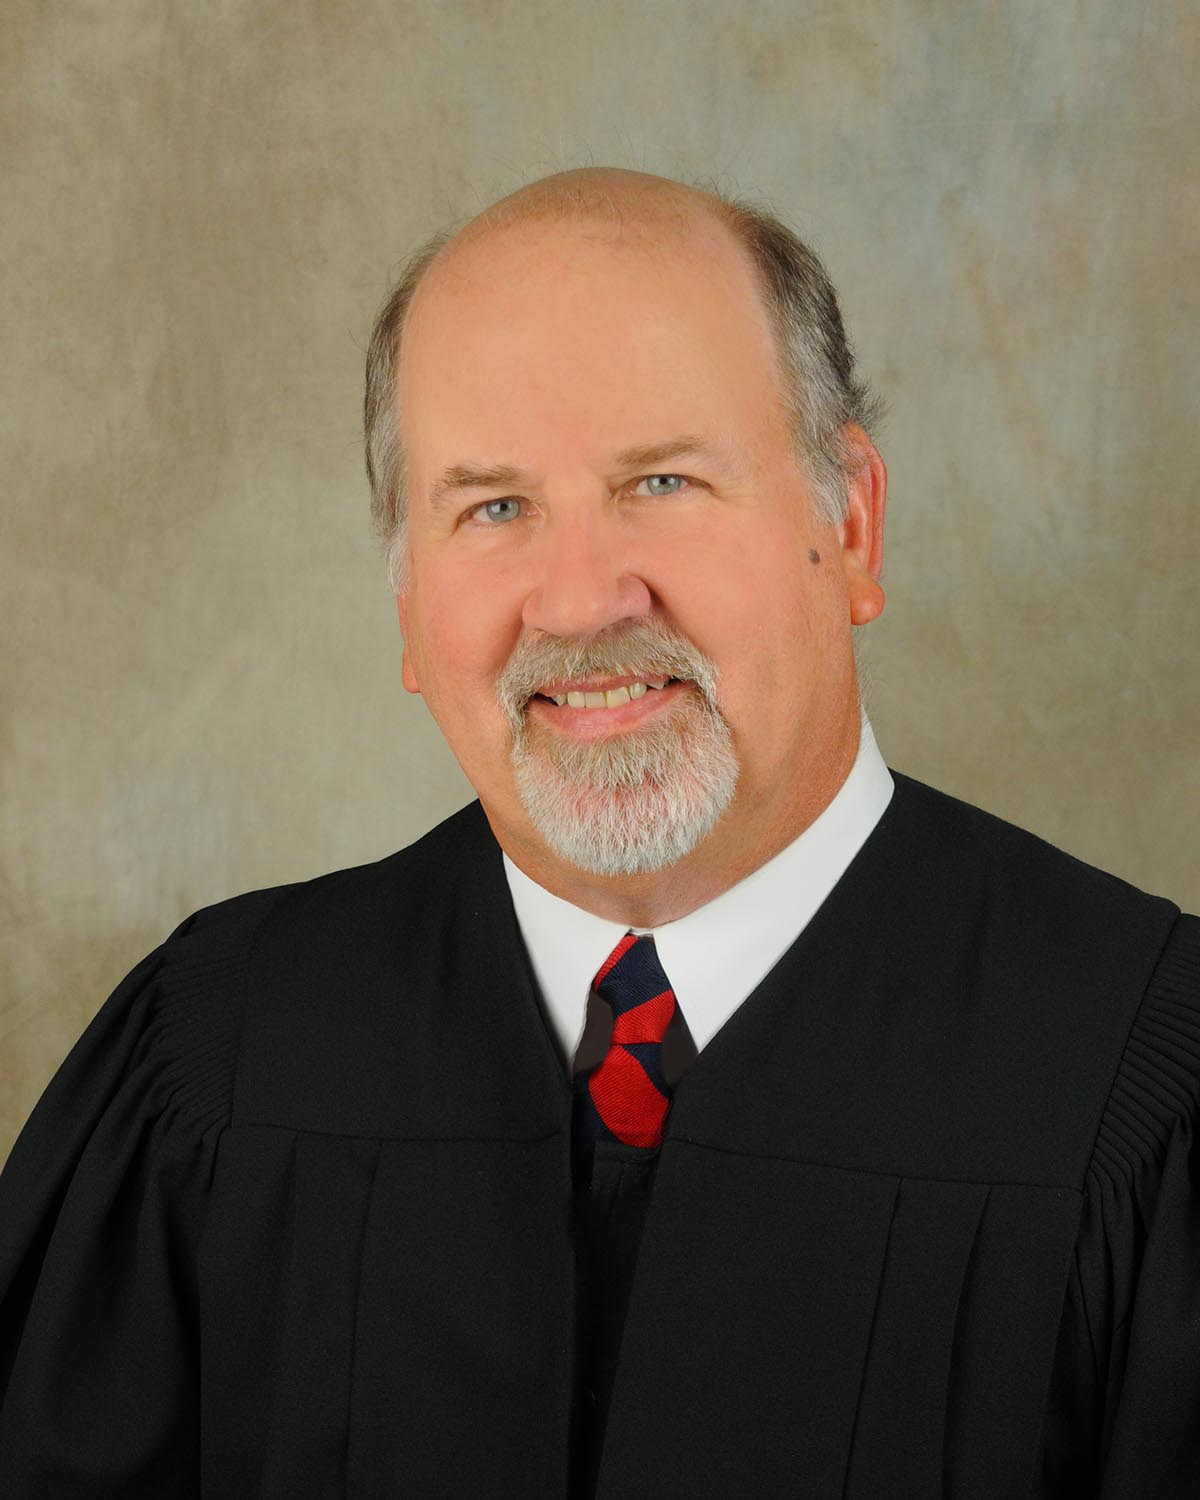 New Judge Banina Photo